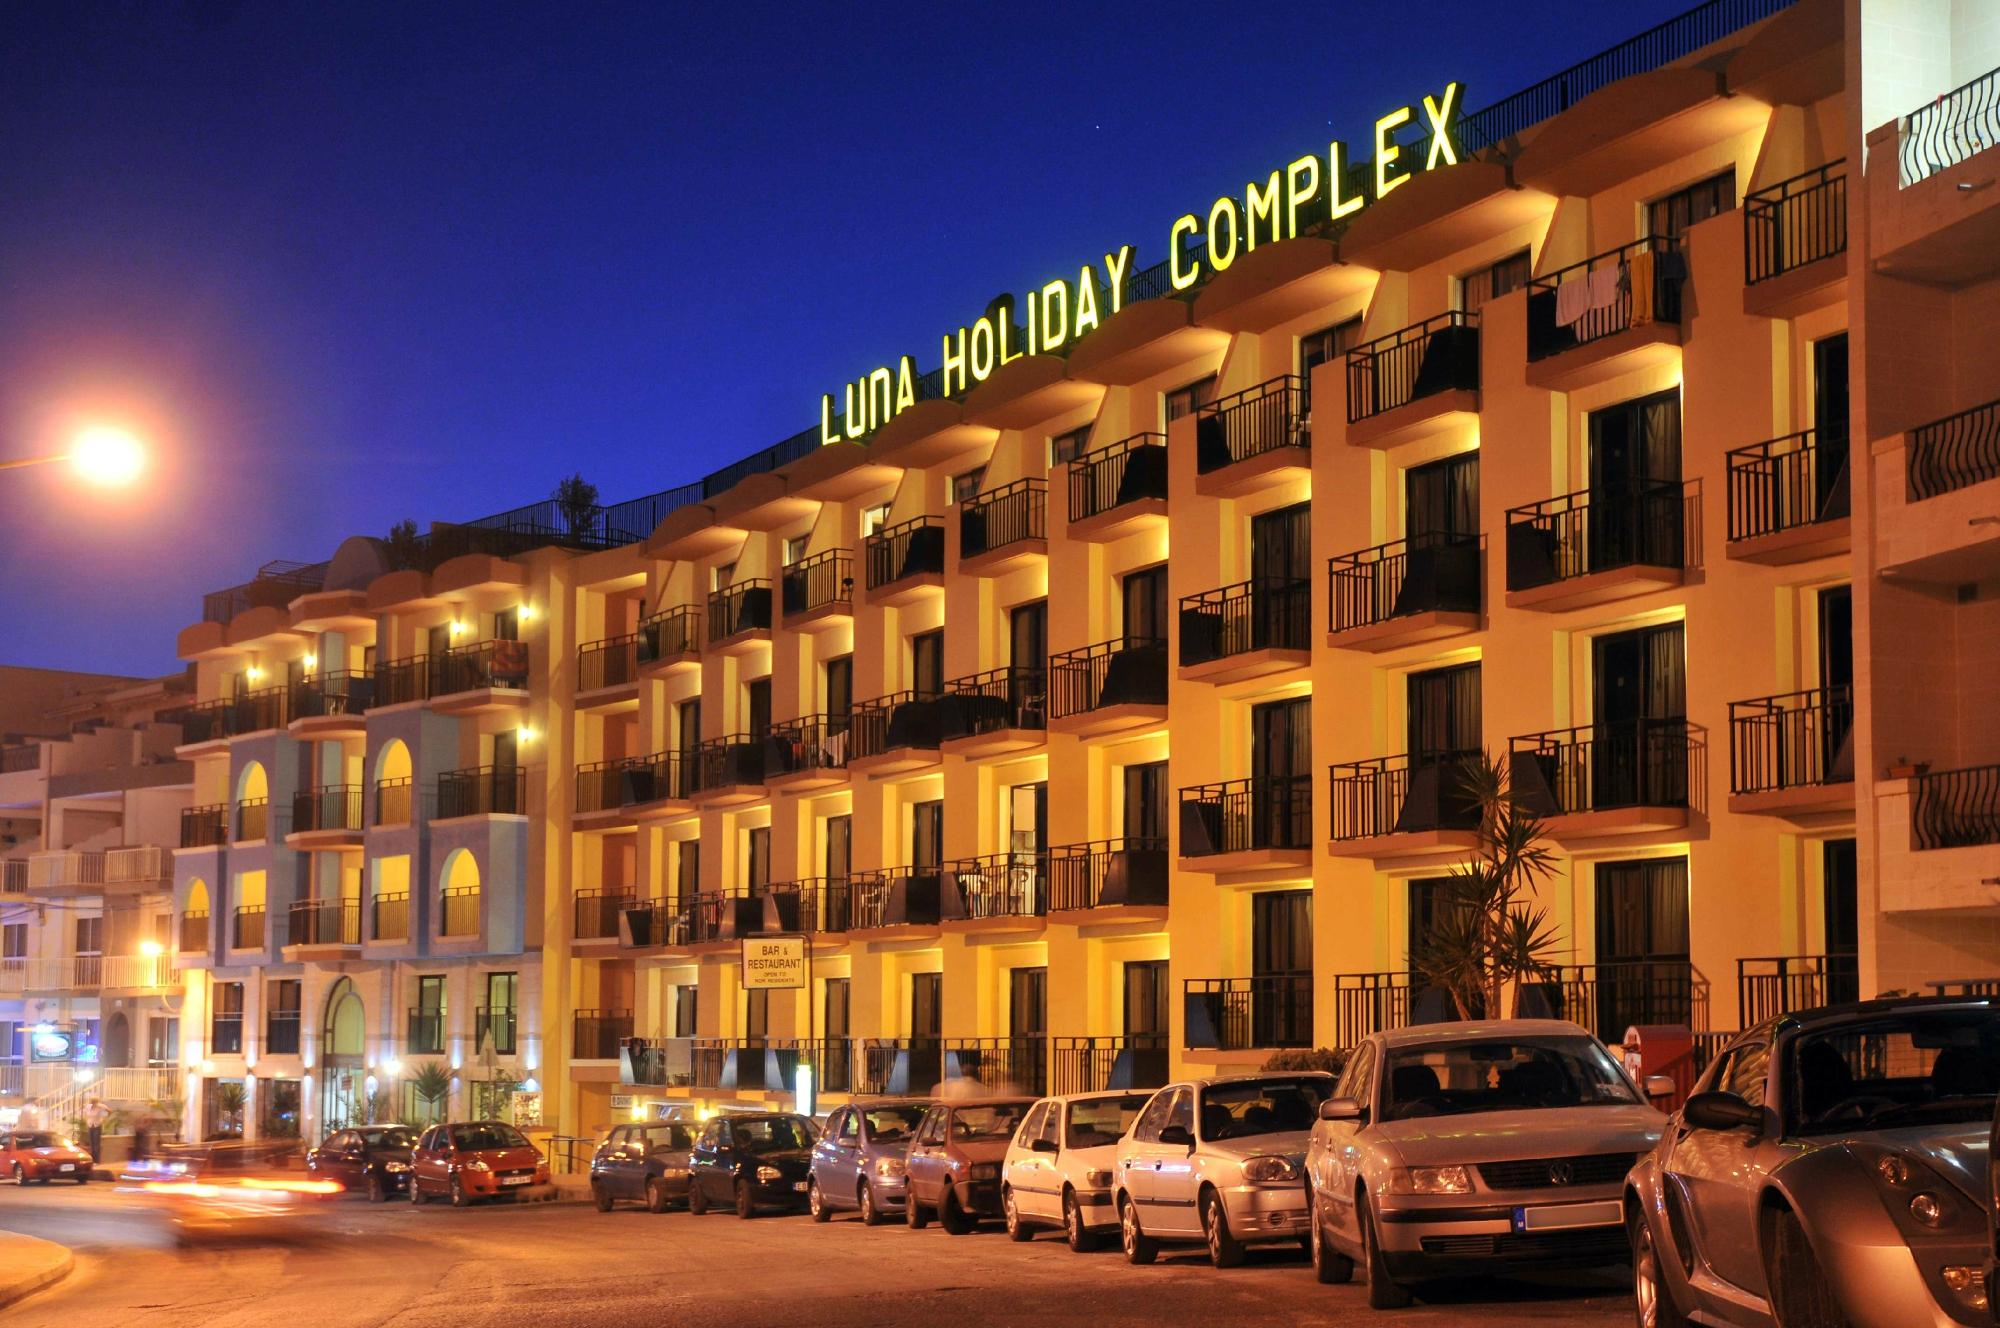 Luna Holiday Complex